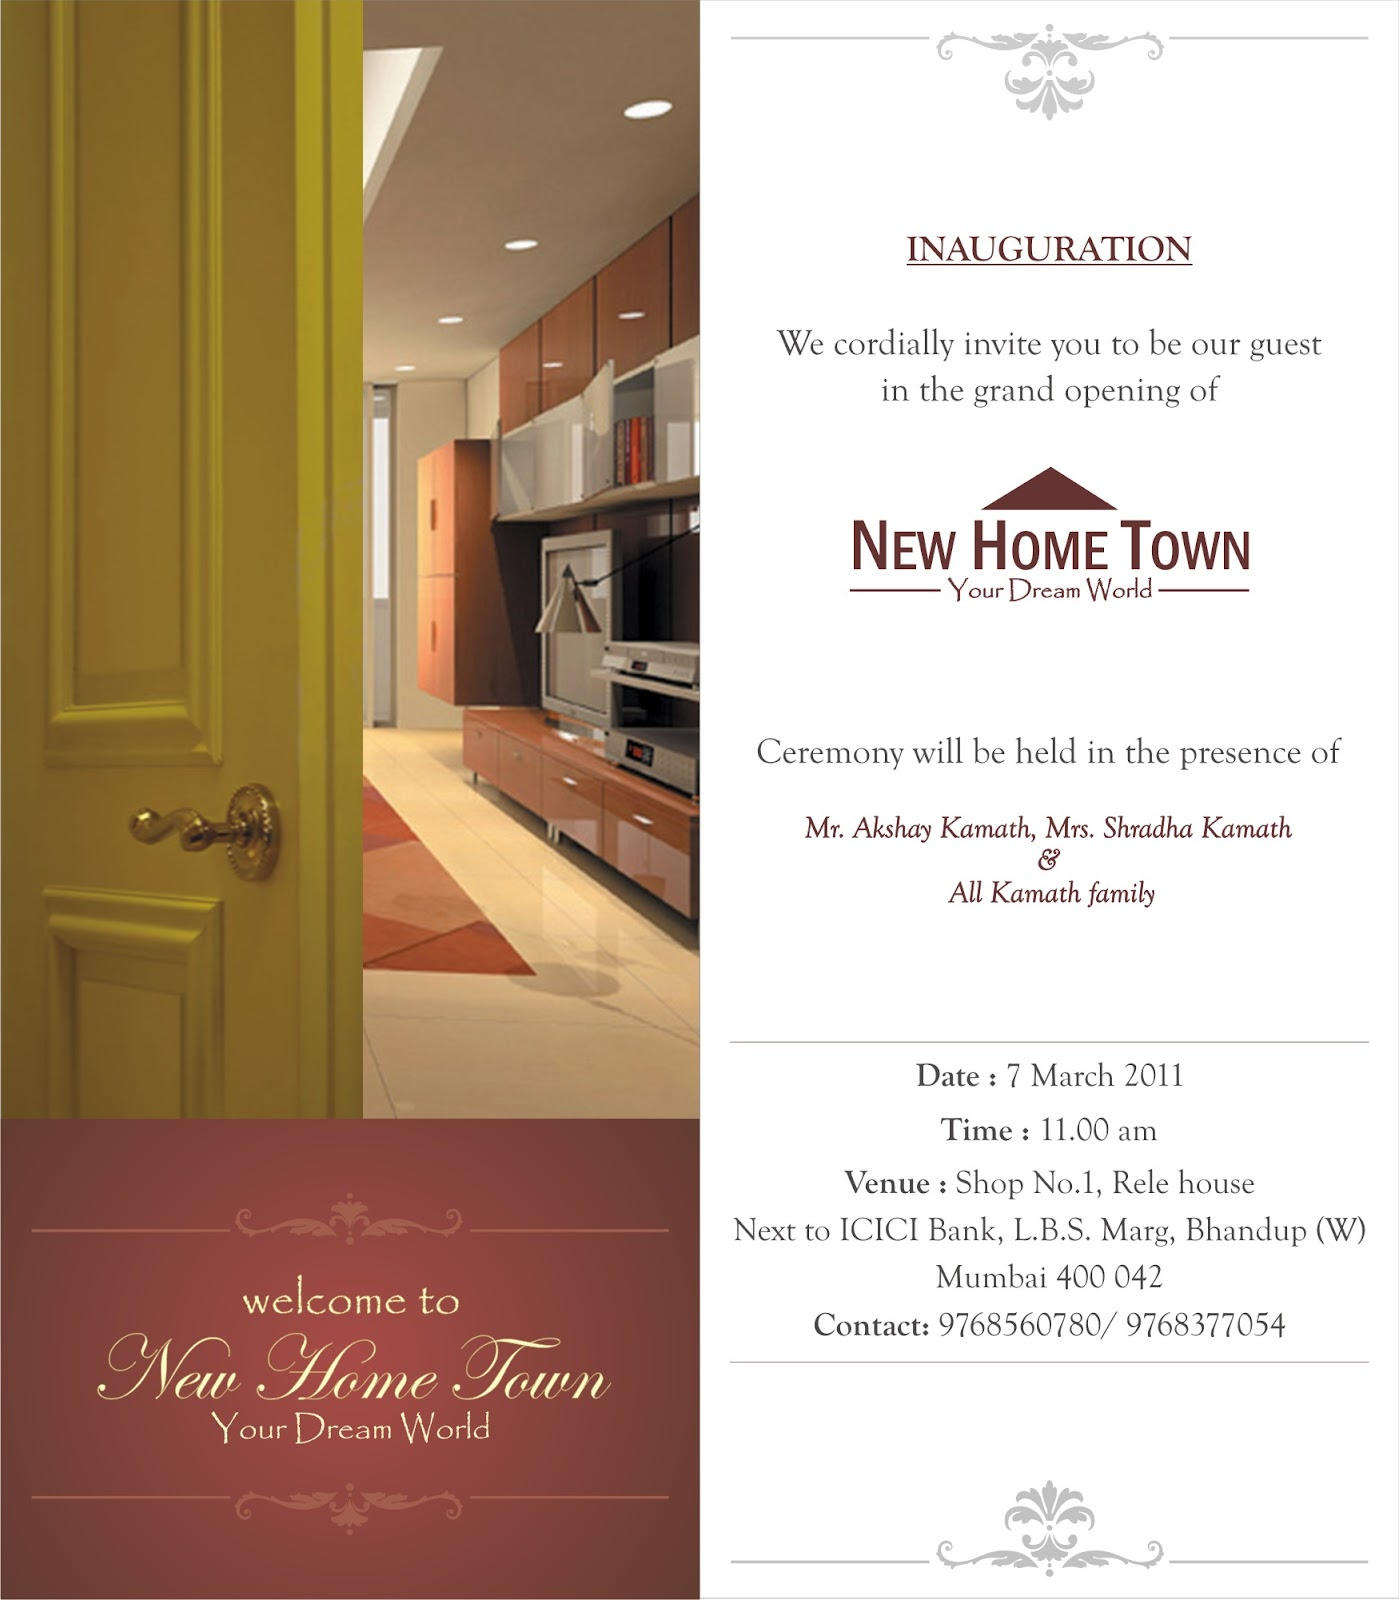 Priyankaworks tuesday 3 april 2012 invitation card for new home town inauguration stopboris Gallery